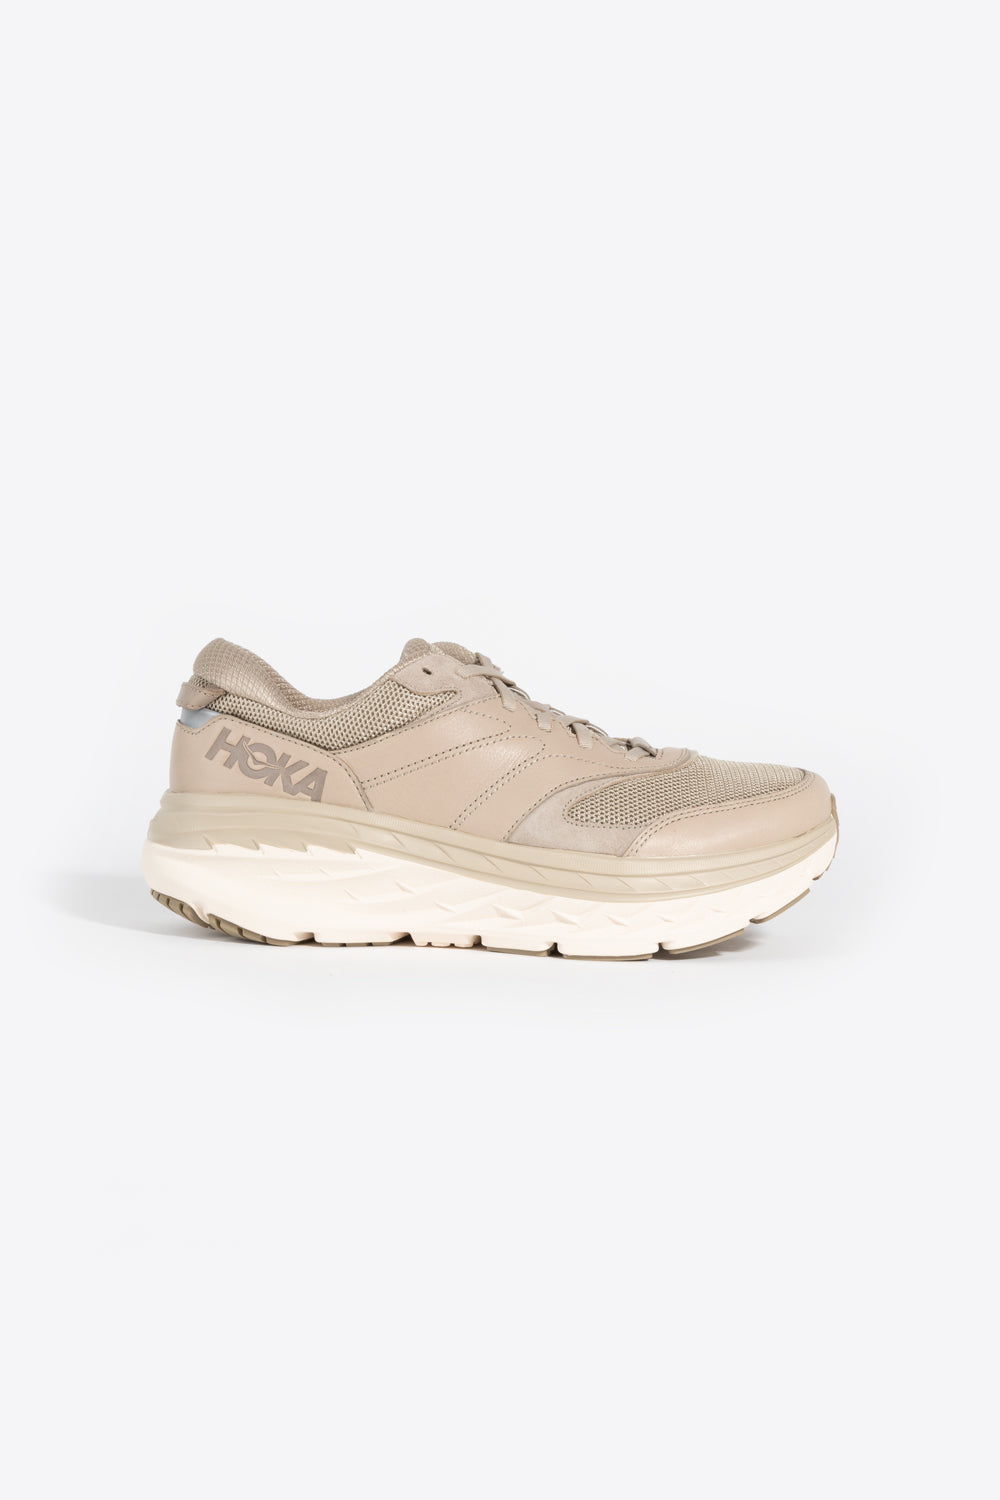 Hoka One One Lifestyle bondi dune oxford tan